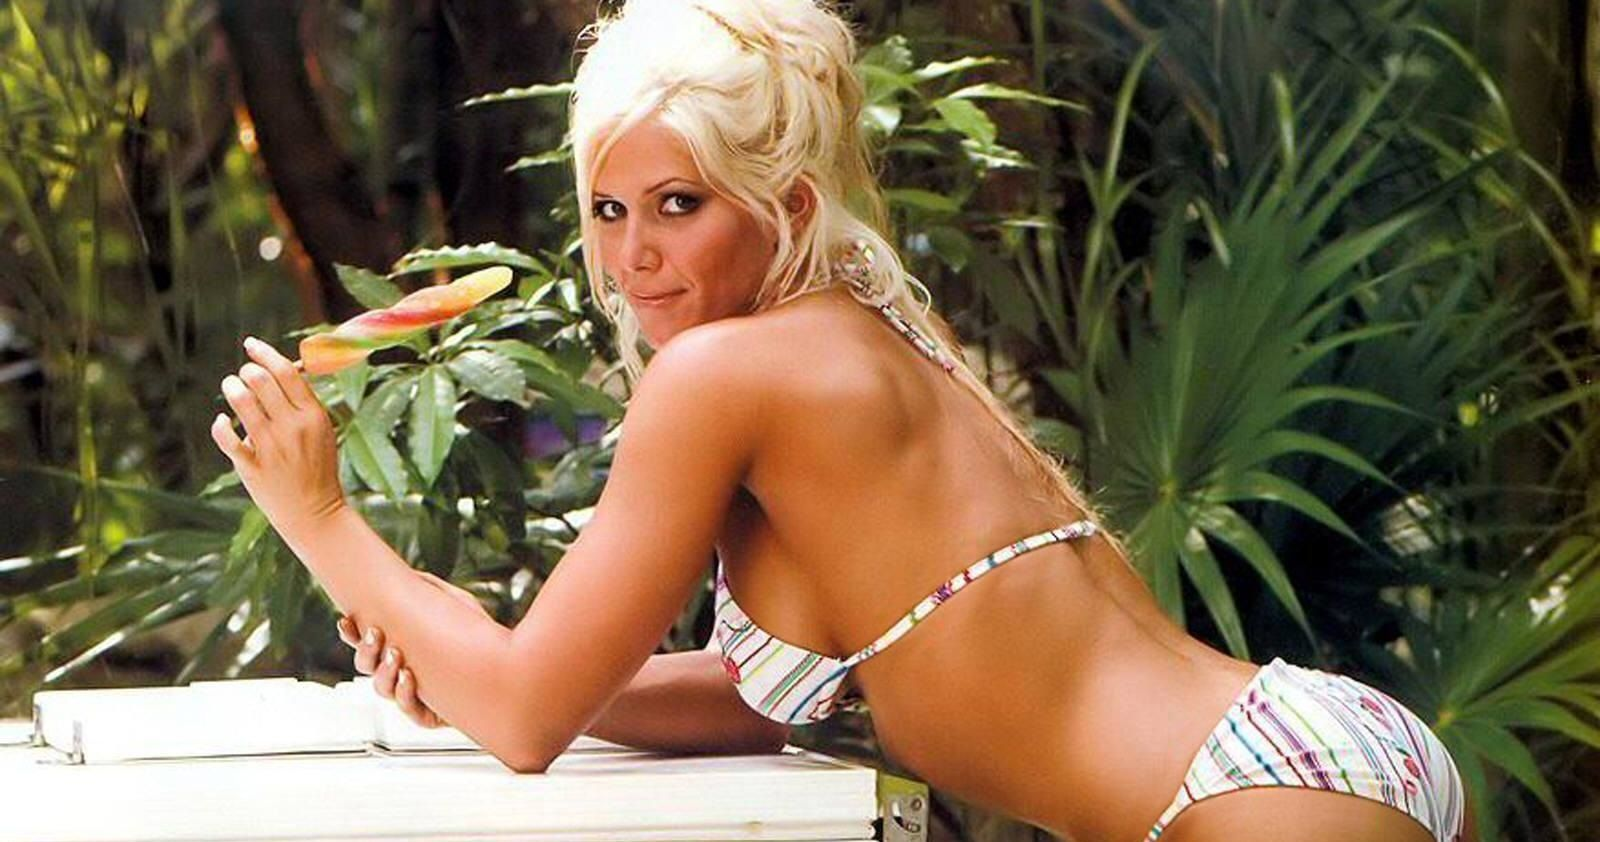 Top 20 Hot Photos Of Wwes Torrie Wilson You Have To See -7544